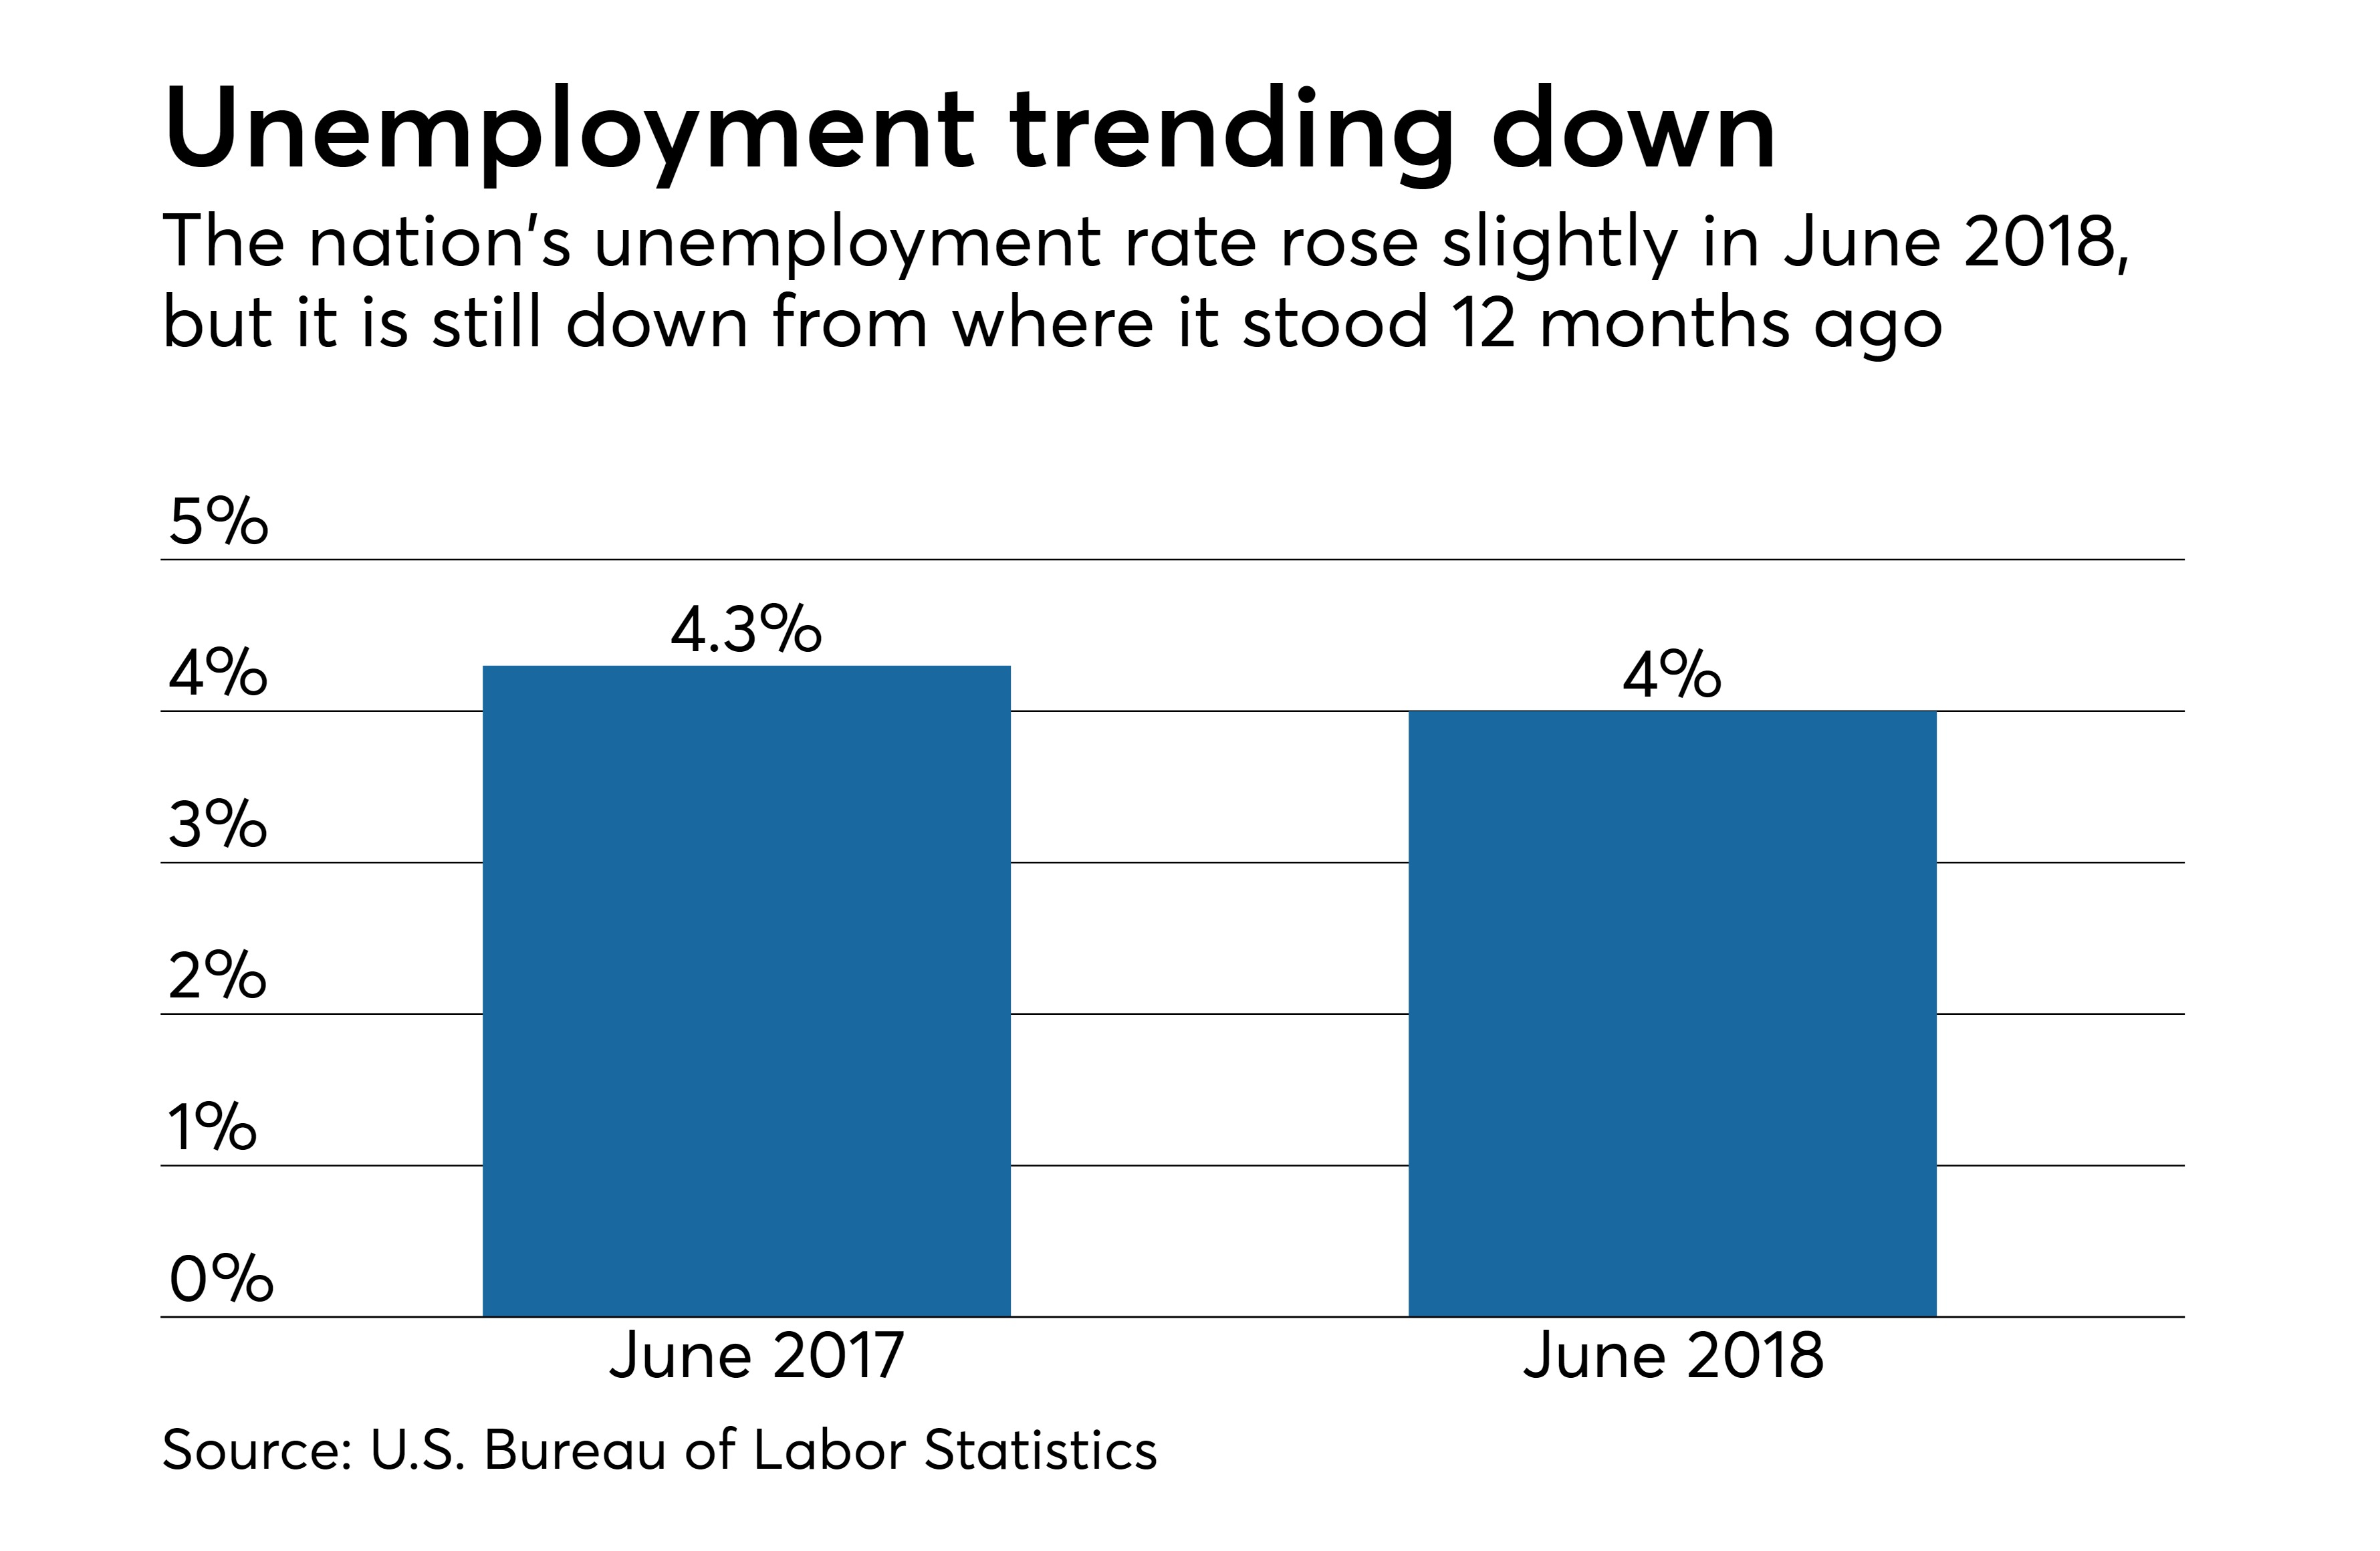 https://assets.sourcemedia.com/5a/21/320de05a4b16a54c25a27cc186e5/june-2018-unemployment-data-cuj-070618.jpeg